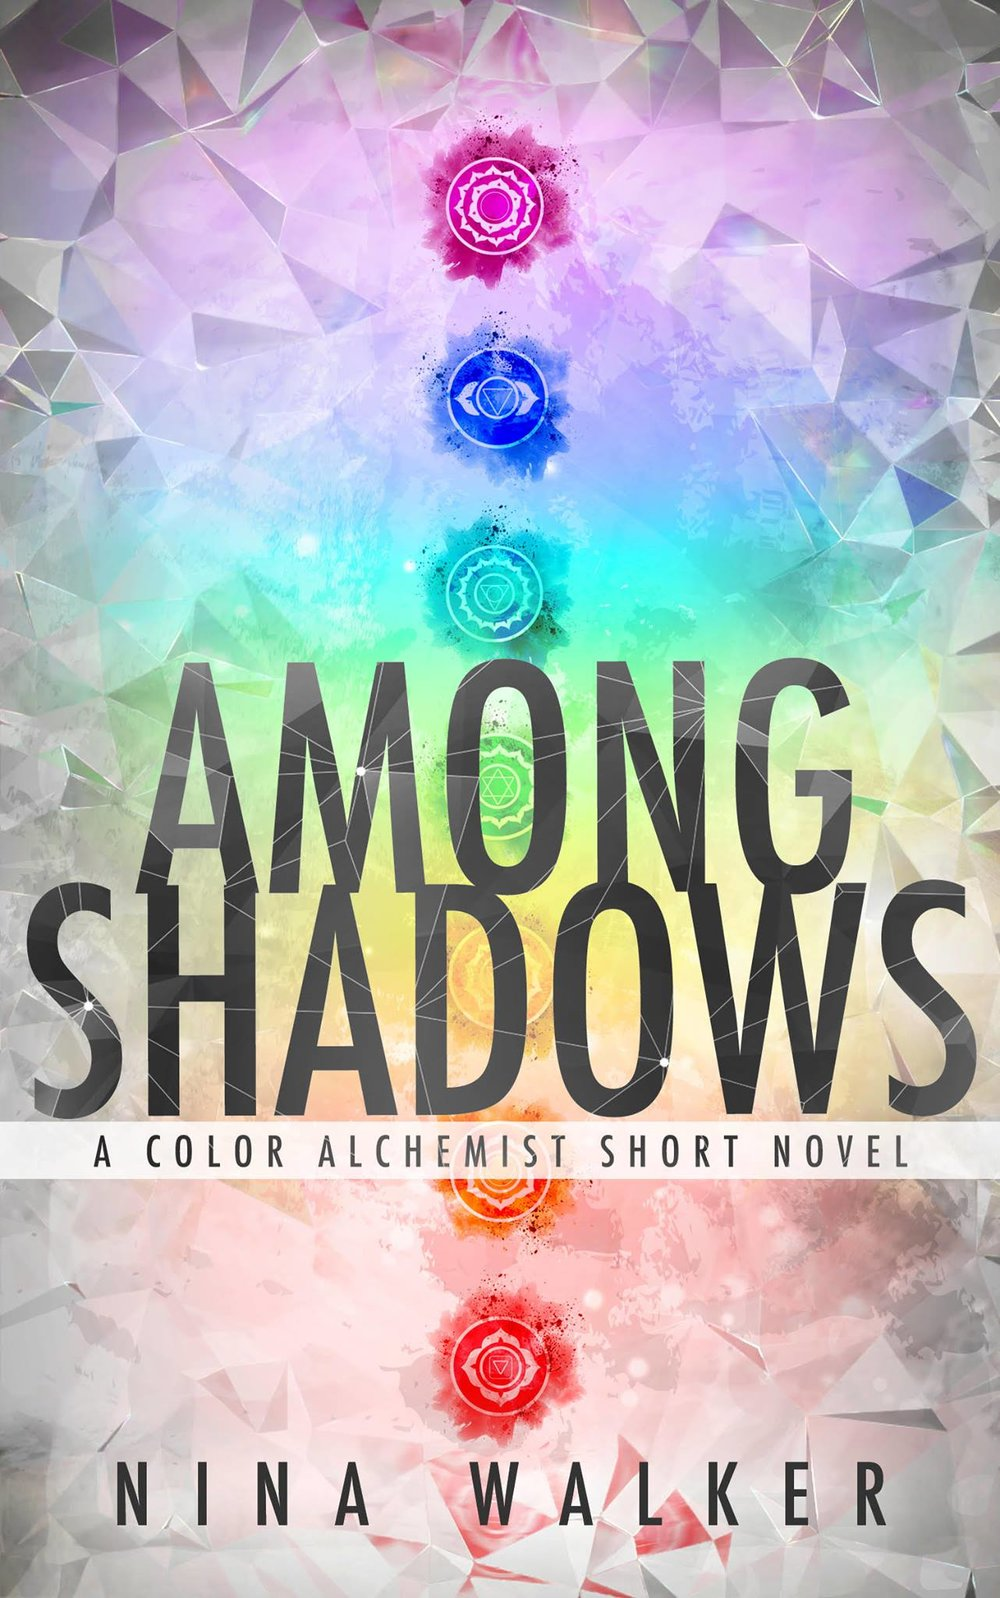 AMONG SHADOWS   Nina Walker    Tristan thought becoming a Royal Officer would be exciting, but it's turning out to be nothing more than glorified babysitting.  That is, until he meets a Color Alchemist with wicked magic—things are finally getting interesting.